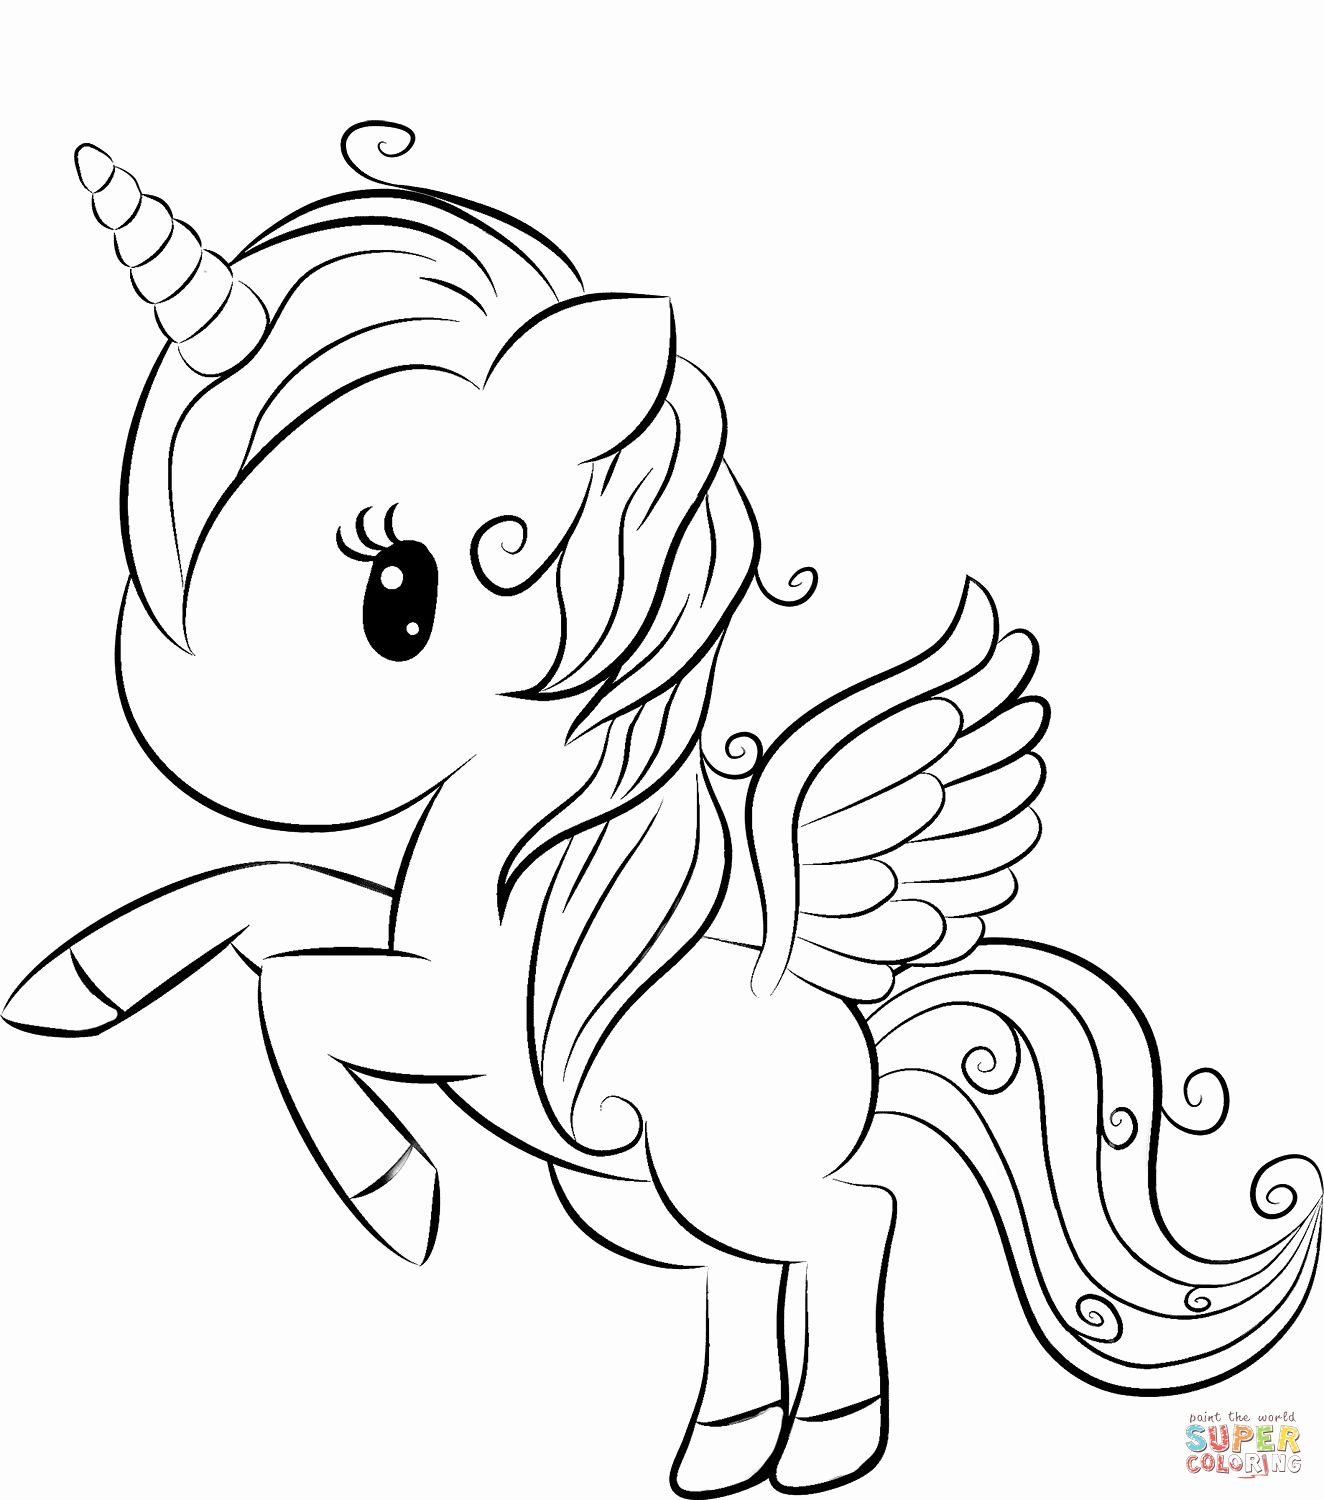 Numberjacks Coloring Pages Awesome Coloring Book Cute Unicorn